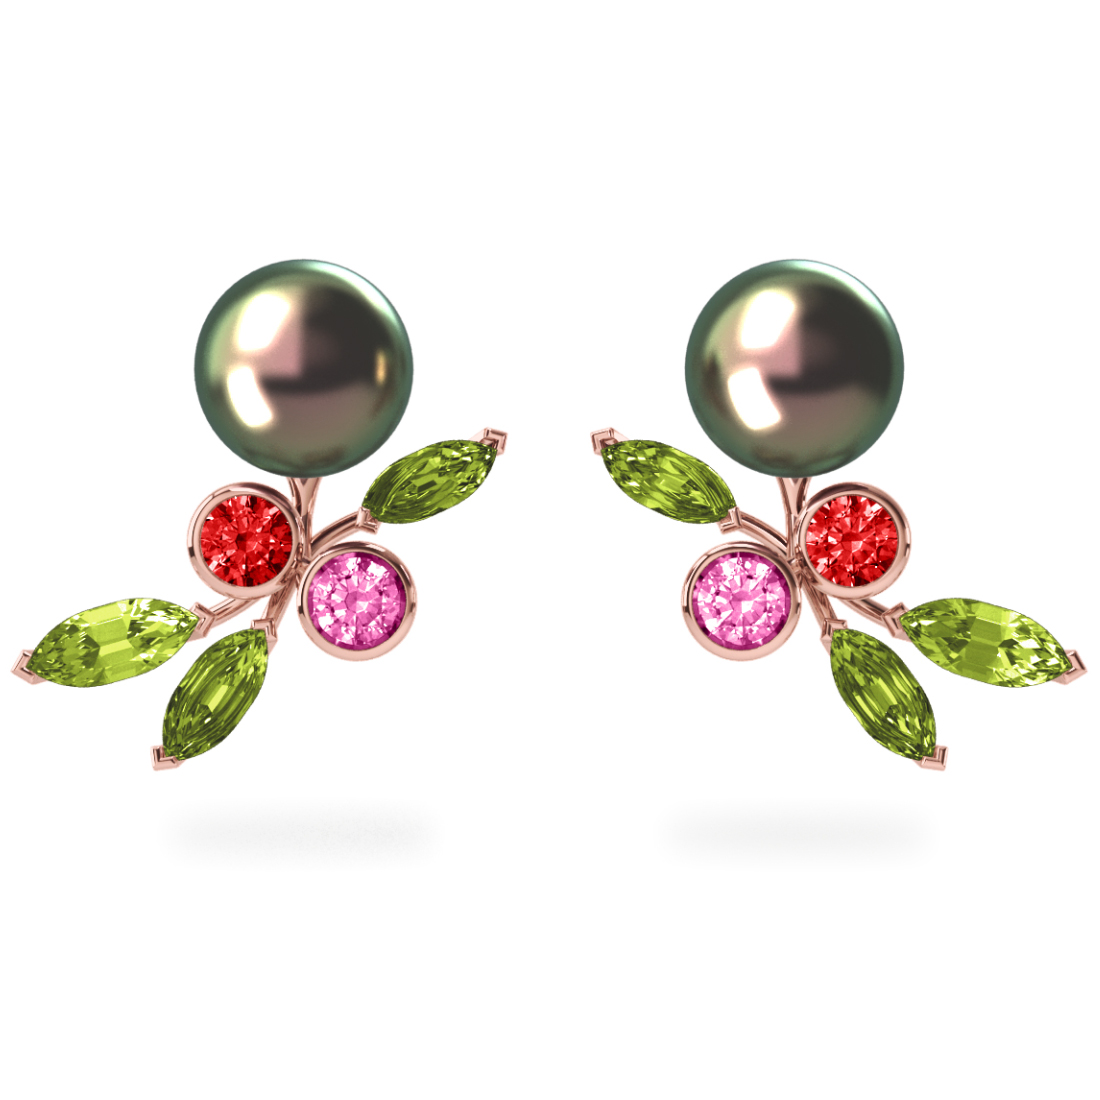 Boucles d'oreilles My Angel Peacock  Pistache - Saphirs, diamants, peridots & perles de Tahiti <br /> Or rose 18 carats